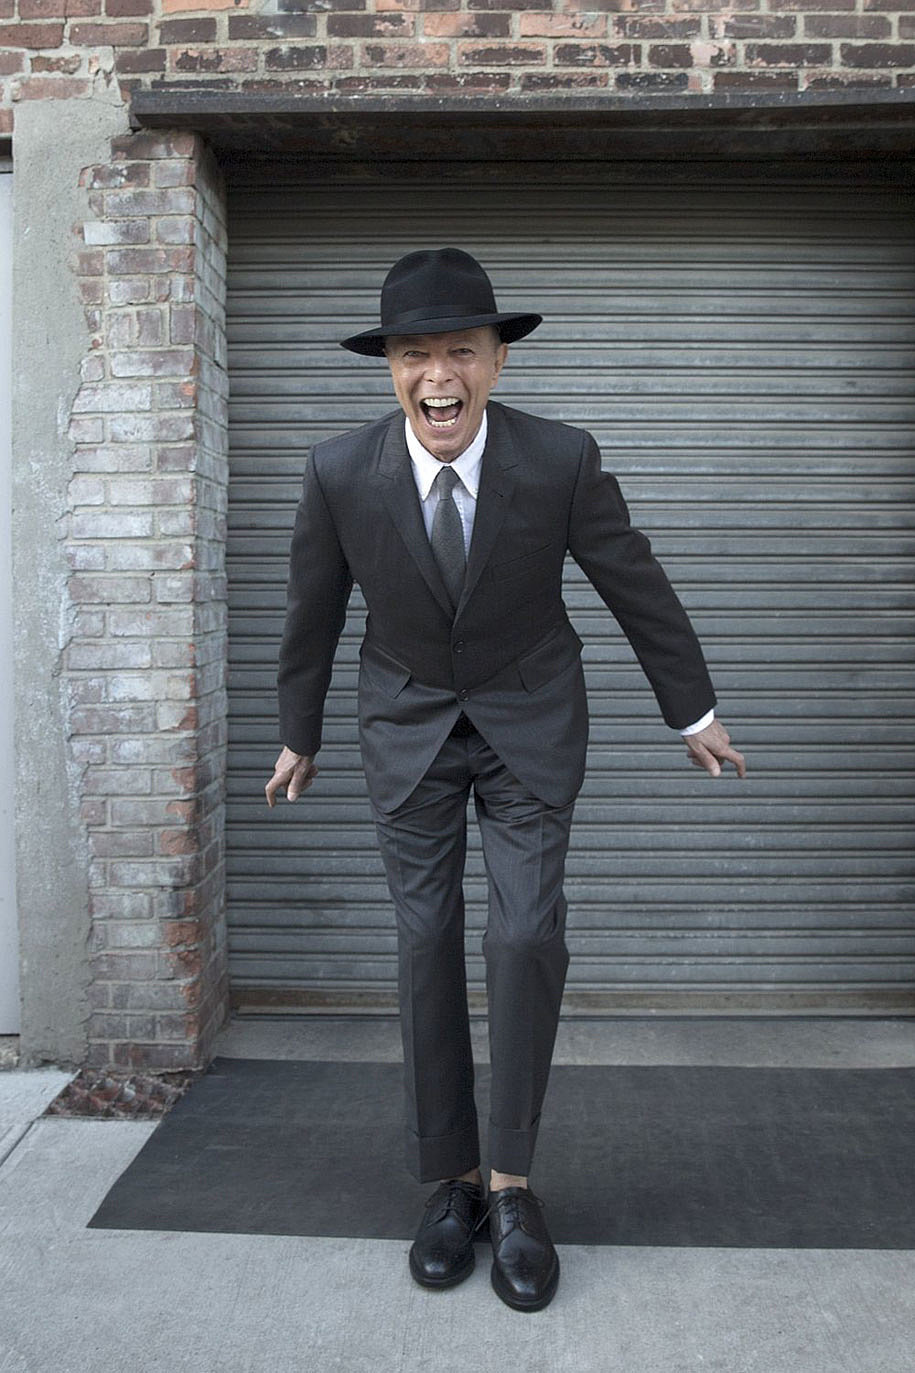 david-bowie-last-photoshoot-pictures-jimmy-king-1-002444.jpg